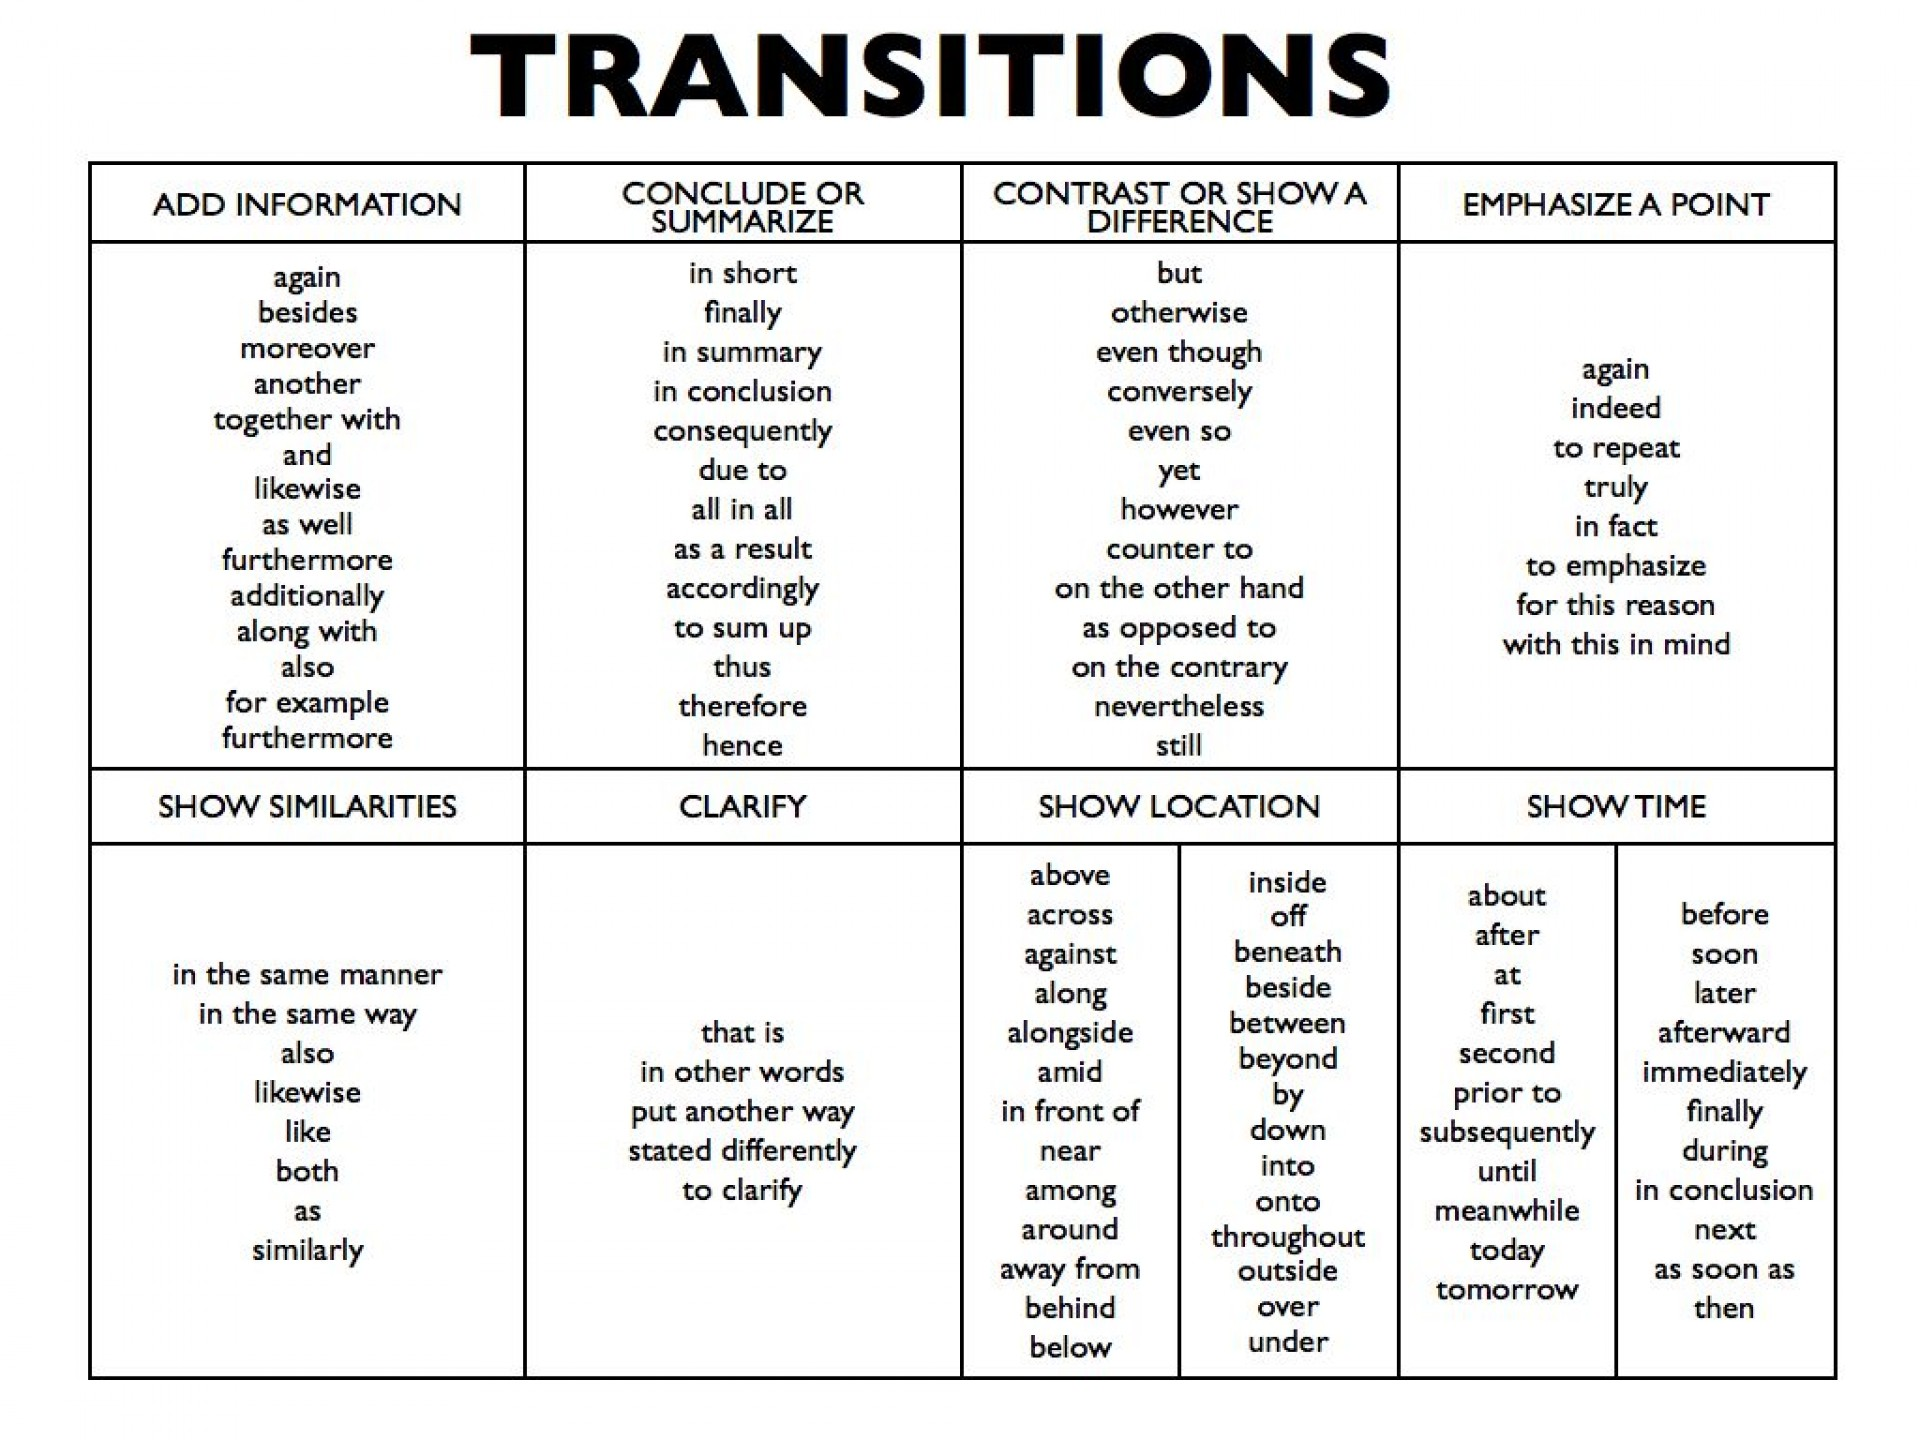 005 Essay Example Transitions 4995883 1 Orig Archaicawful Transition Sentence Examples Words And Phrases List 1920